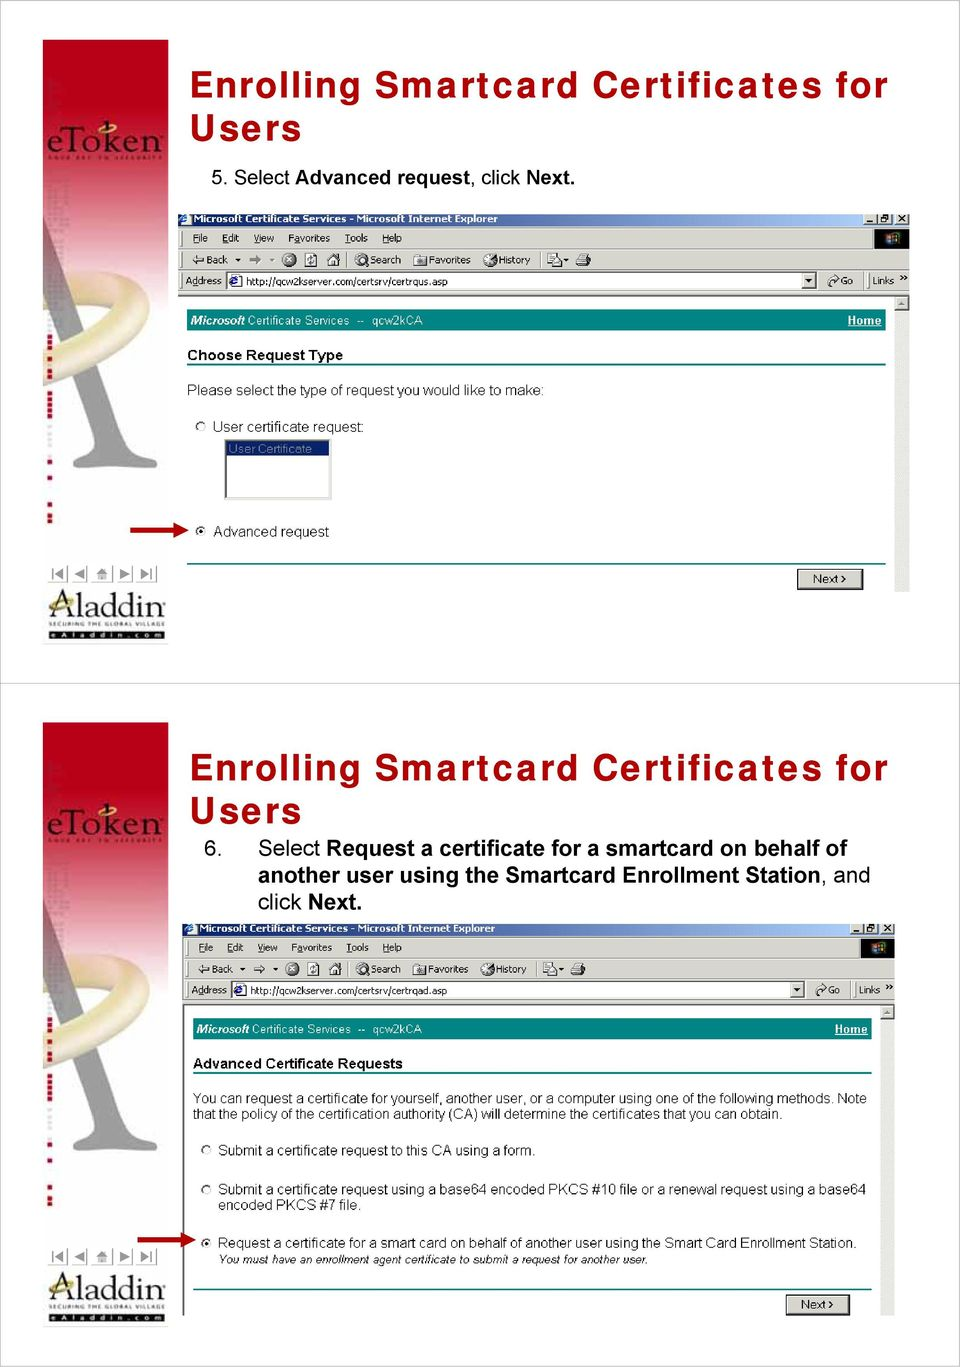 Enrolling Smartcard Certificates for Users 6.